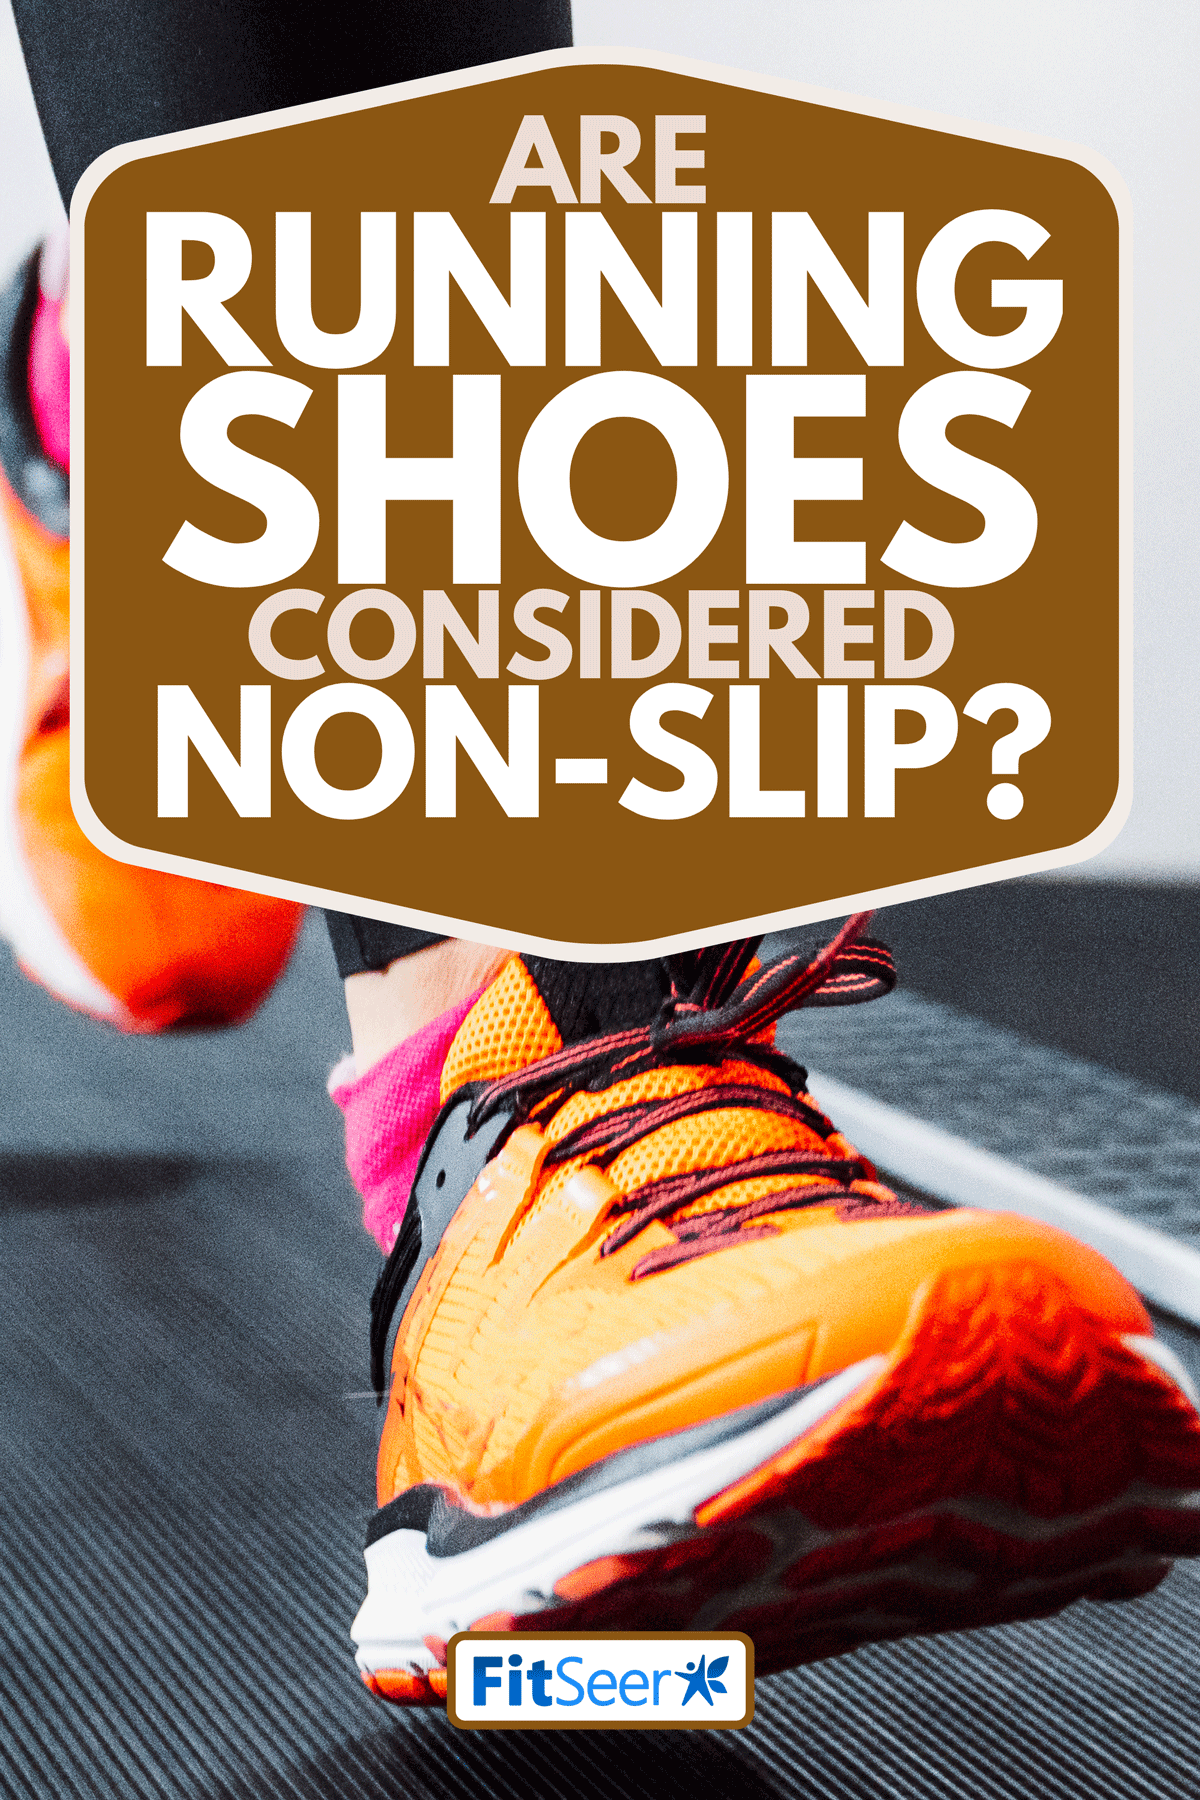 A person jogging on a treadmill in fitness center, Are Running Shoes Considered Non-slip?